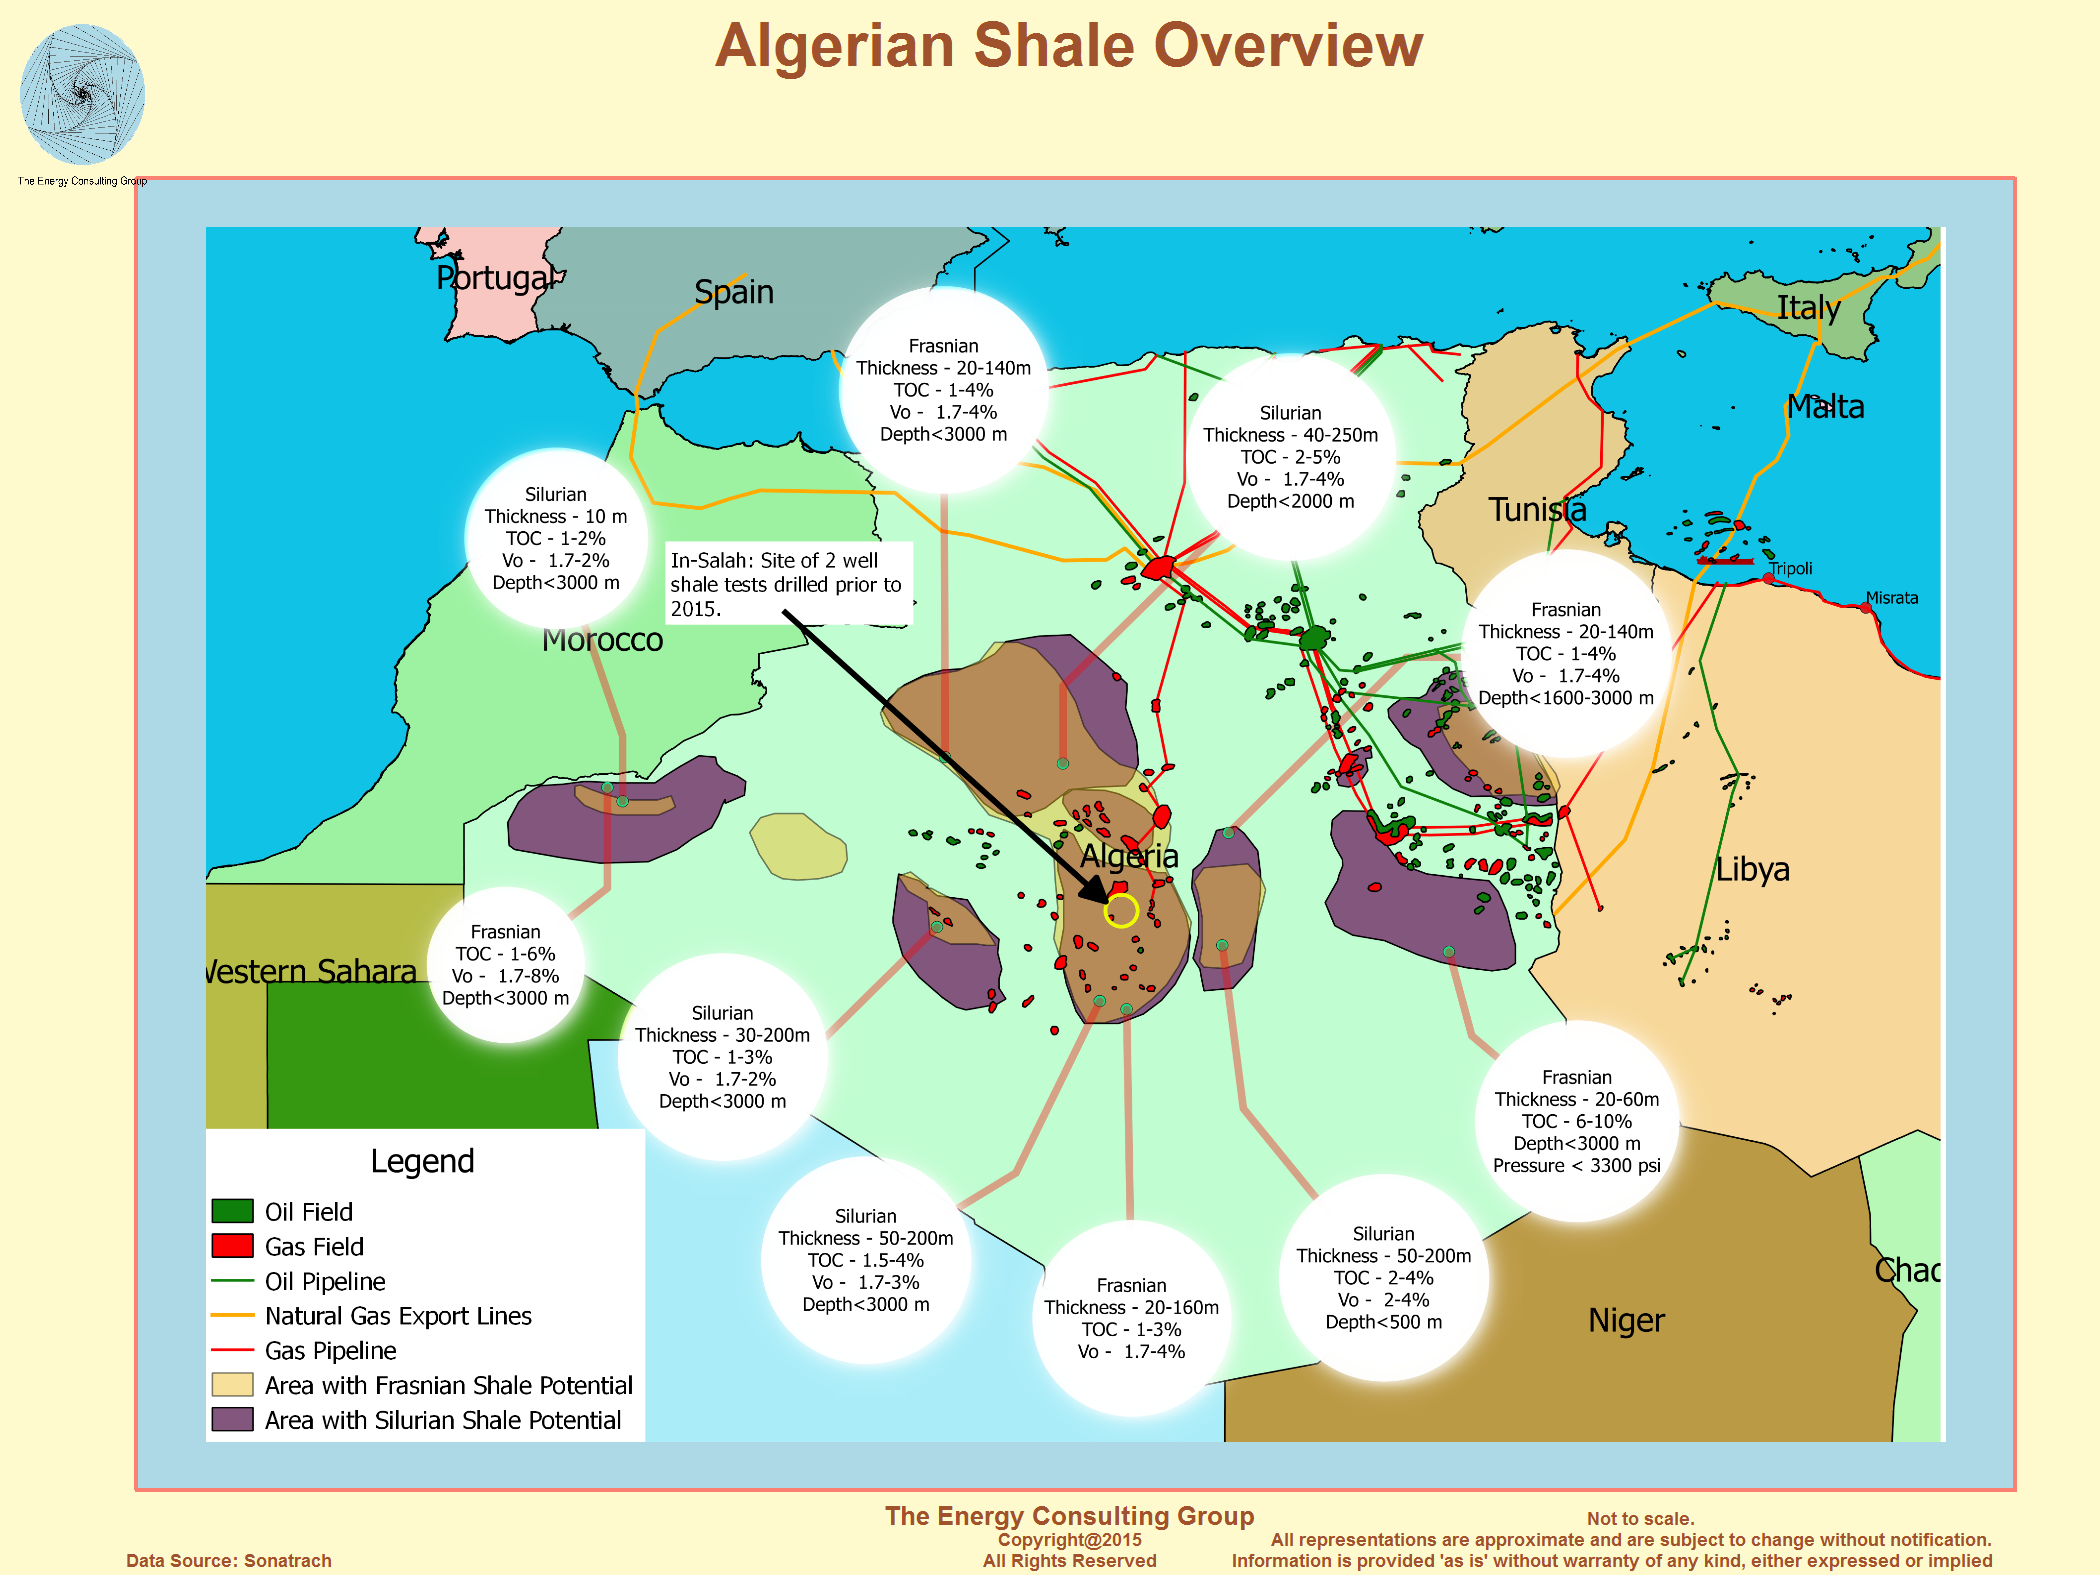 The Upstream Oil and Gas Industry In Algeria